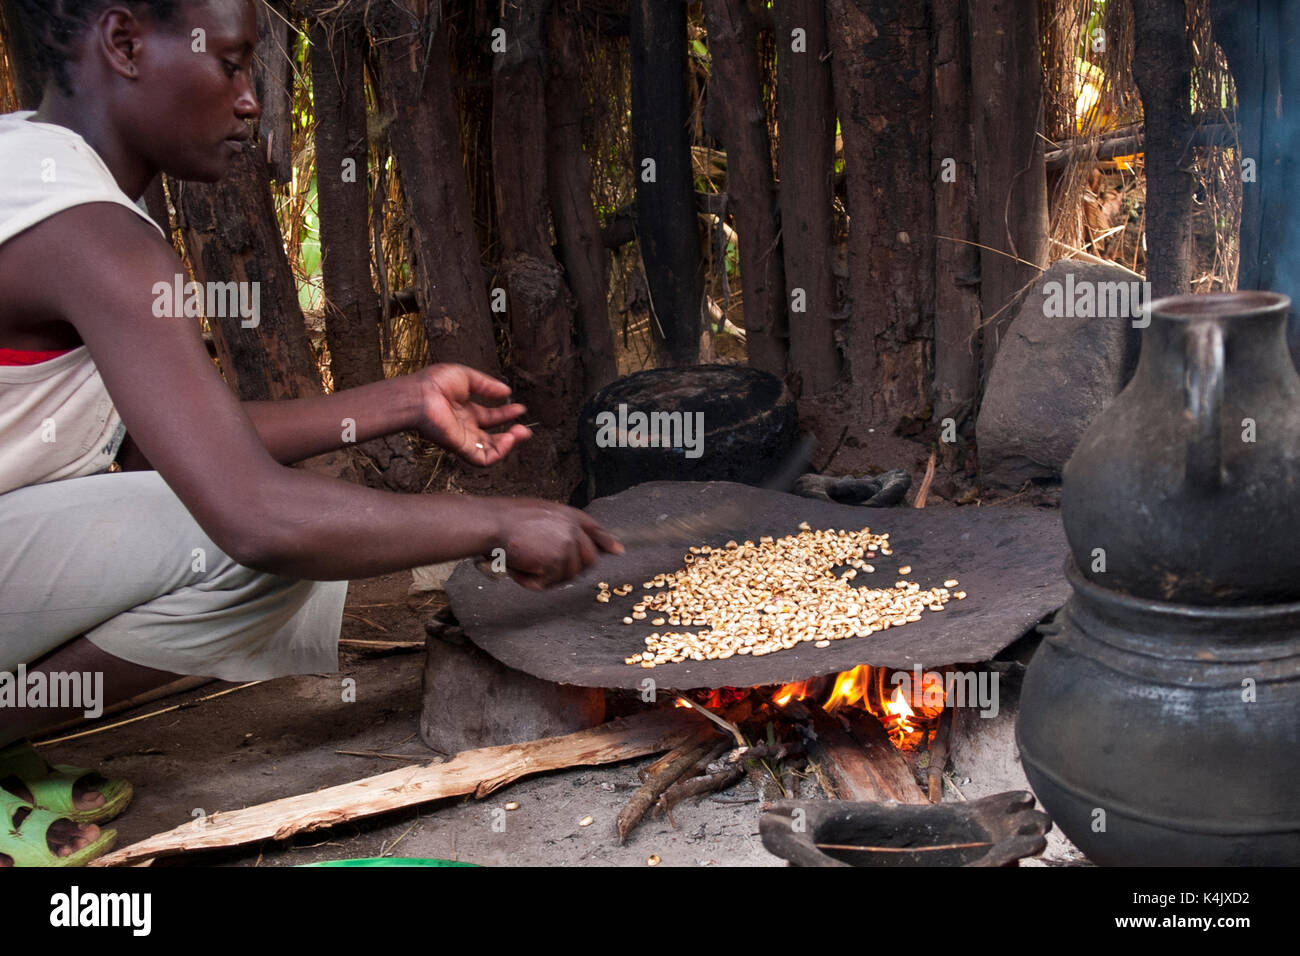 A woman roasts coffee beans on an open fire, Ethiopia, Africa - Stock Image